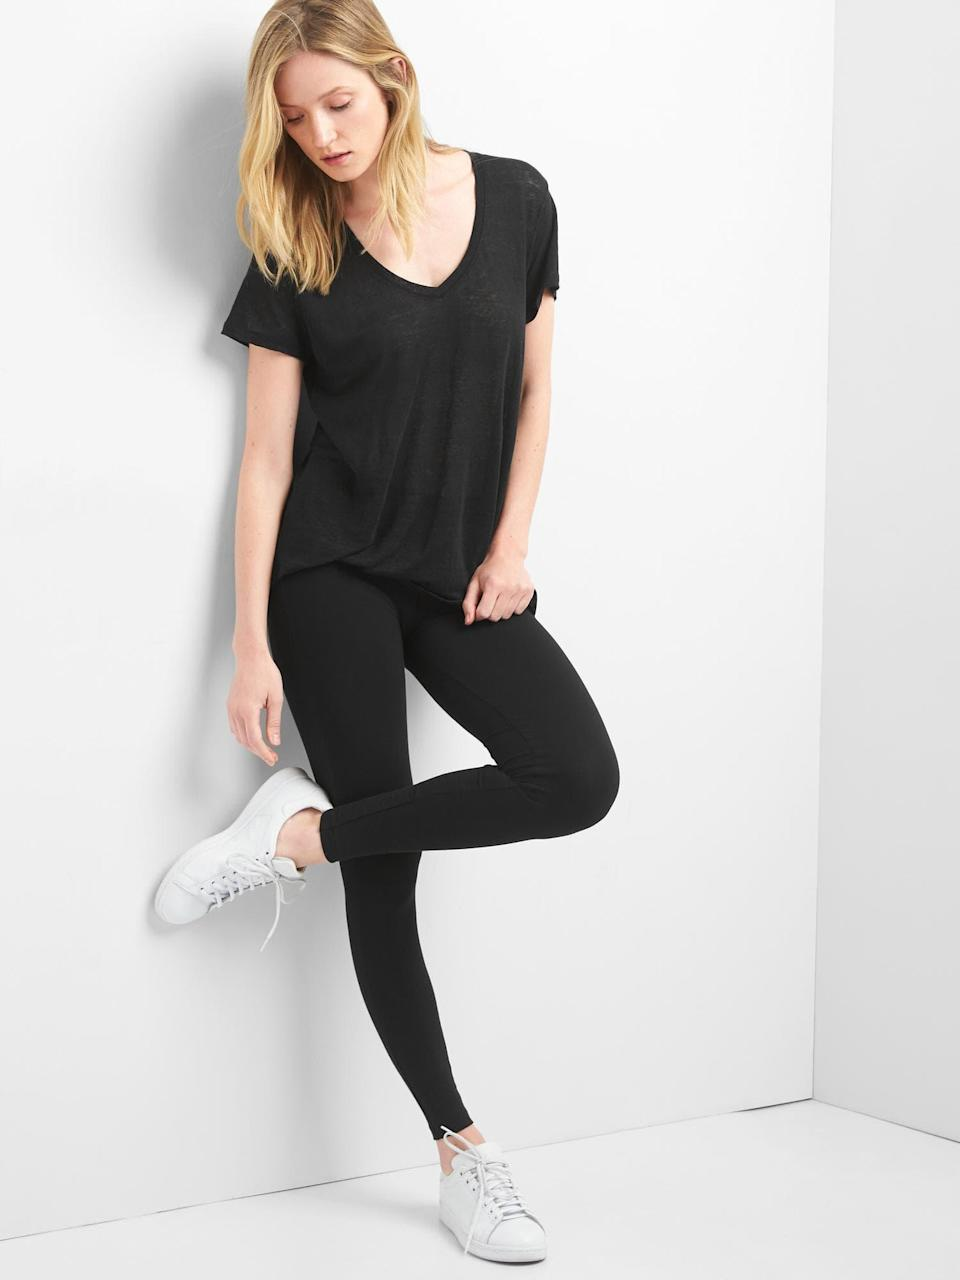 """<strong><h3>Gap: The Lounge Legging</h3></strong><br>Looking for a pair of leggings that are as basic as they come? Look no further. This tried and true Gap pair will have you buying more than one so you can keep them in constant rotation.<br><br><strong>The hype:</strong> 4.5 out of 5 stars and 801 reviews on Gap<br><br><strong>What they're saying:</strong> """"I own 5 pairs of these. Two are in constant rotation and three are back ups because I'm afraid Gap will stop making them. They are quite long which is no problem because I always wear them inside boots. I find they fit large overall side I sized down. I take care not to wash them with anything cotton or light colored, and I *try* to hang them to dry after putting them through the machine. They are holding up very well. I highly recommend them as a basic style but really good legging."""" - MsdotQ, Gap Review<br><br><strong>Gap</strong> Basic Black Jersey Leggings, $, available at <a href=""""https://go.skimresources.com/?id=30283X879131&url=https%3A%2F%2Fwww.gap.com%2Fbrowse%2Fproduct.do%3Fcid%3D1088813%26pcid%3D1011761%26vid%3D1%26pid%3D905272012"""" rel=""""nofollow noopener"""" target=""""_blank"""" data-ylk=""""slk:Gap"""" class=""""link rapid-noclick-resp"""">Gap</a>"""